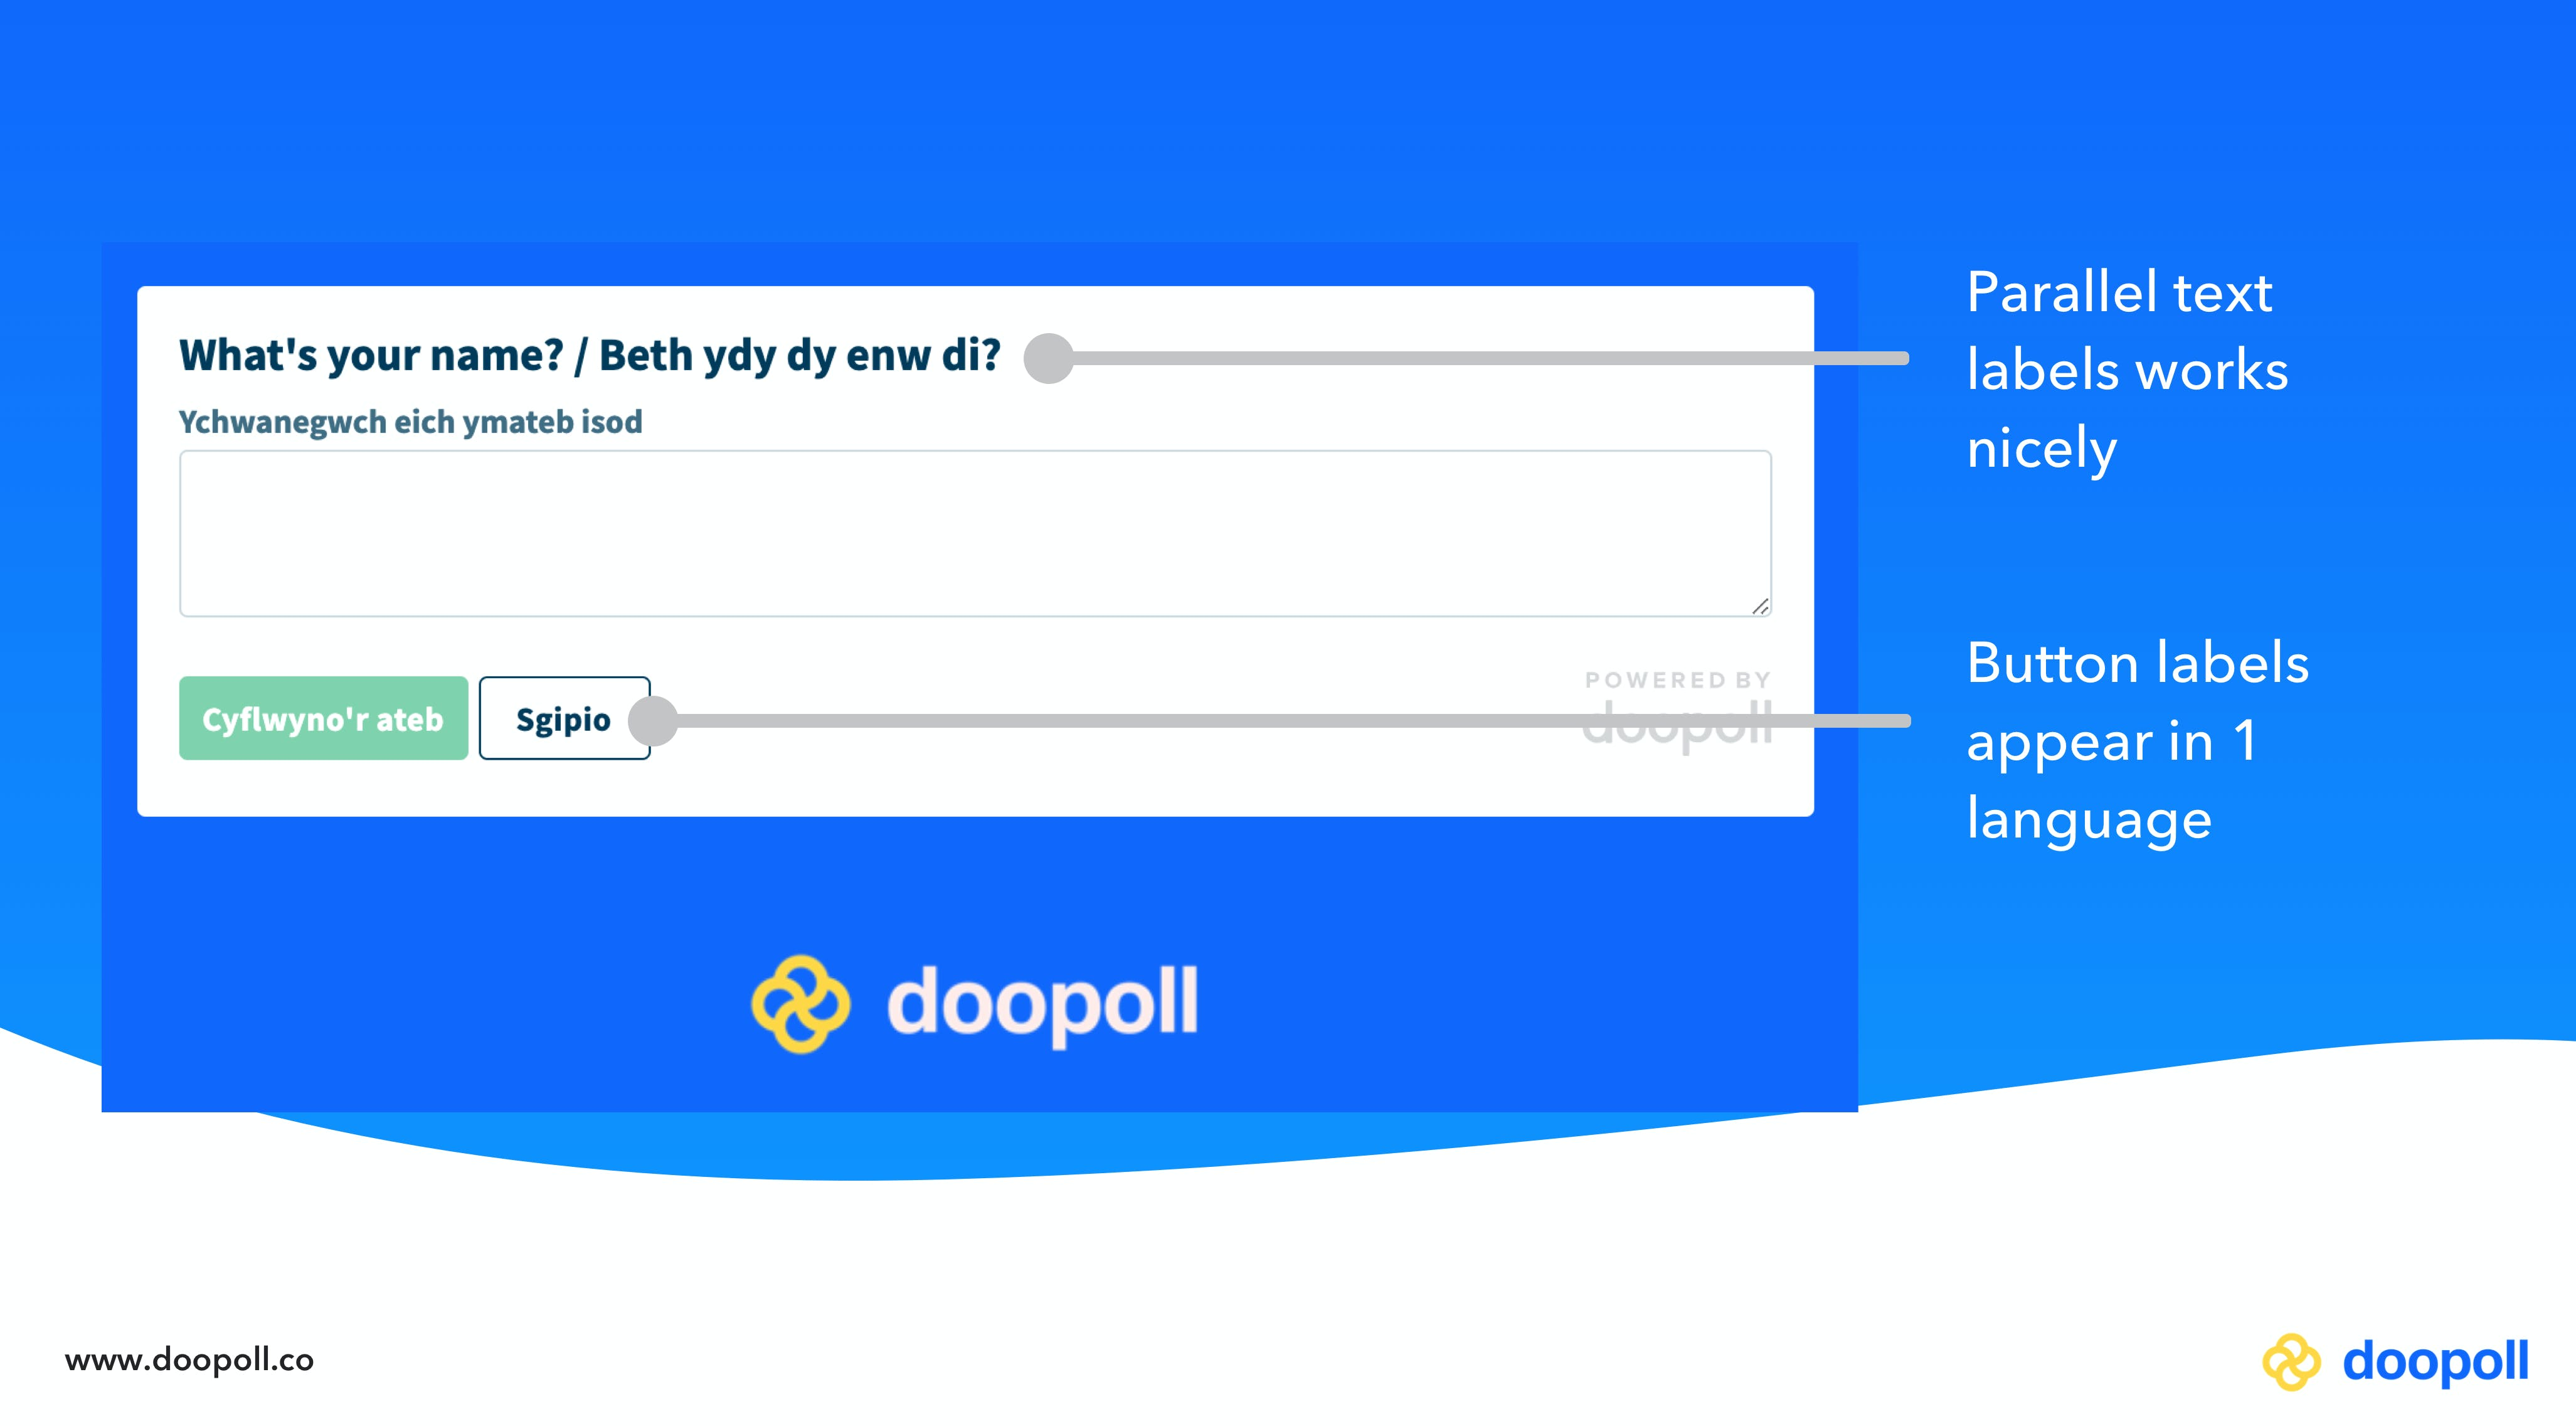 An example of a bilingual survey on doopoll